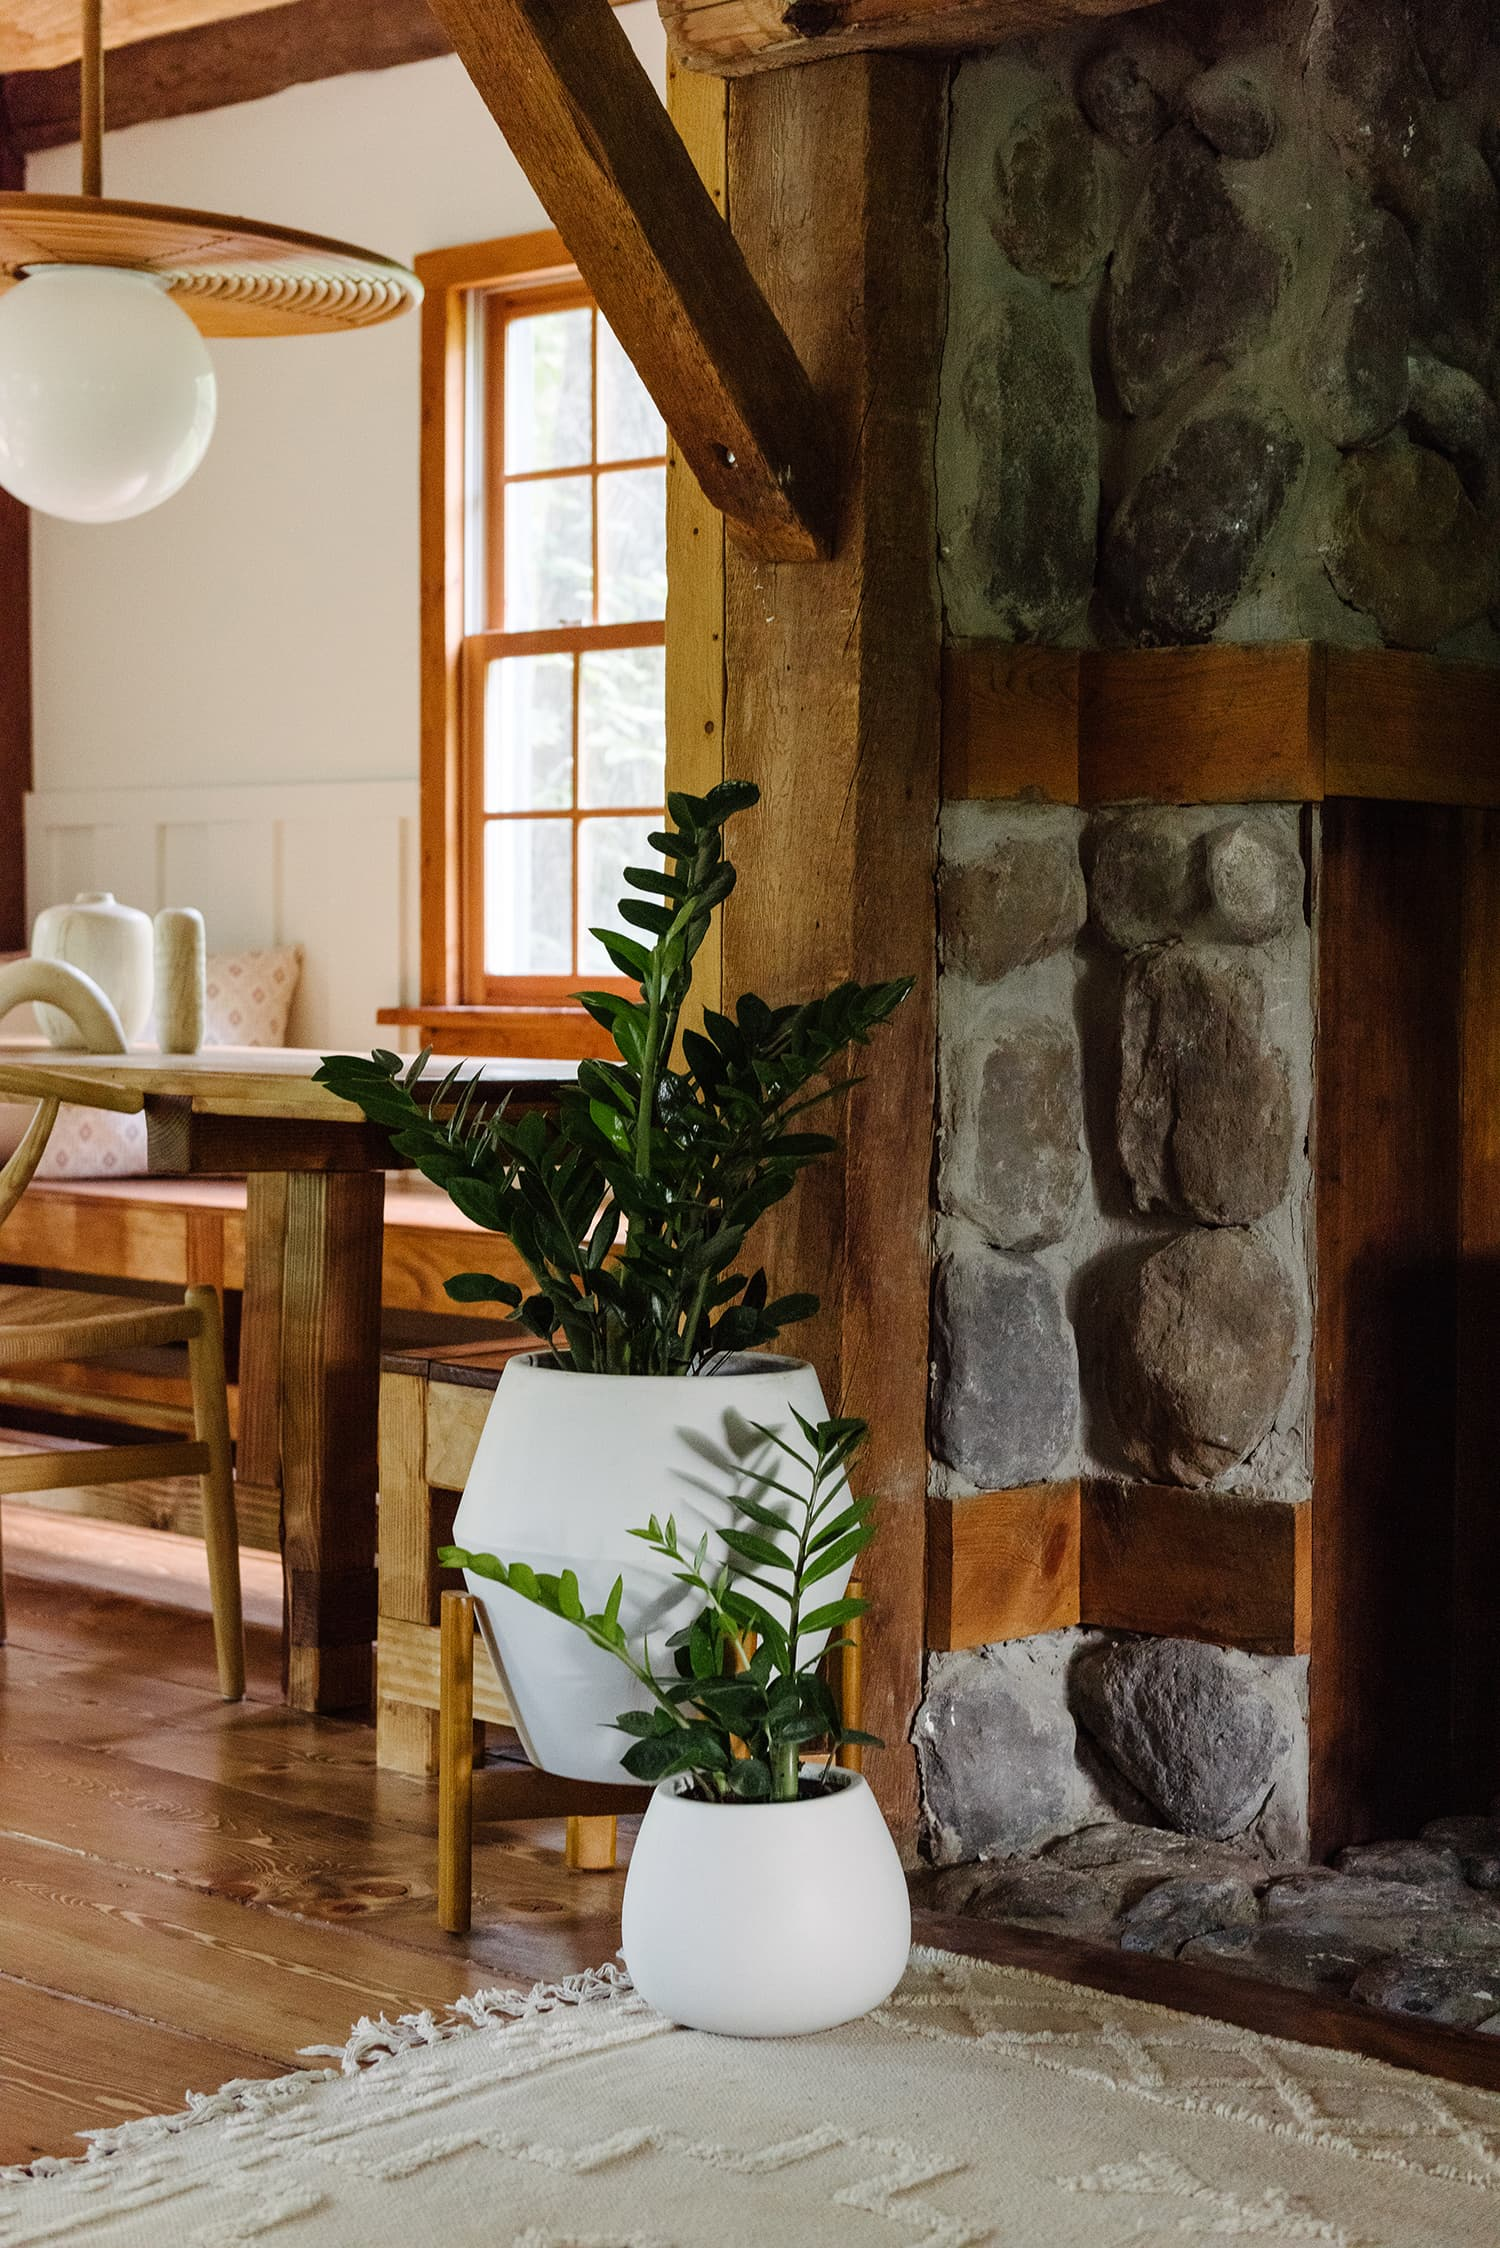 this is the hunter house with plants and textures inspired by biophilia